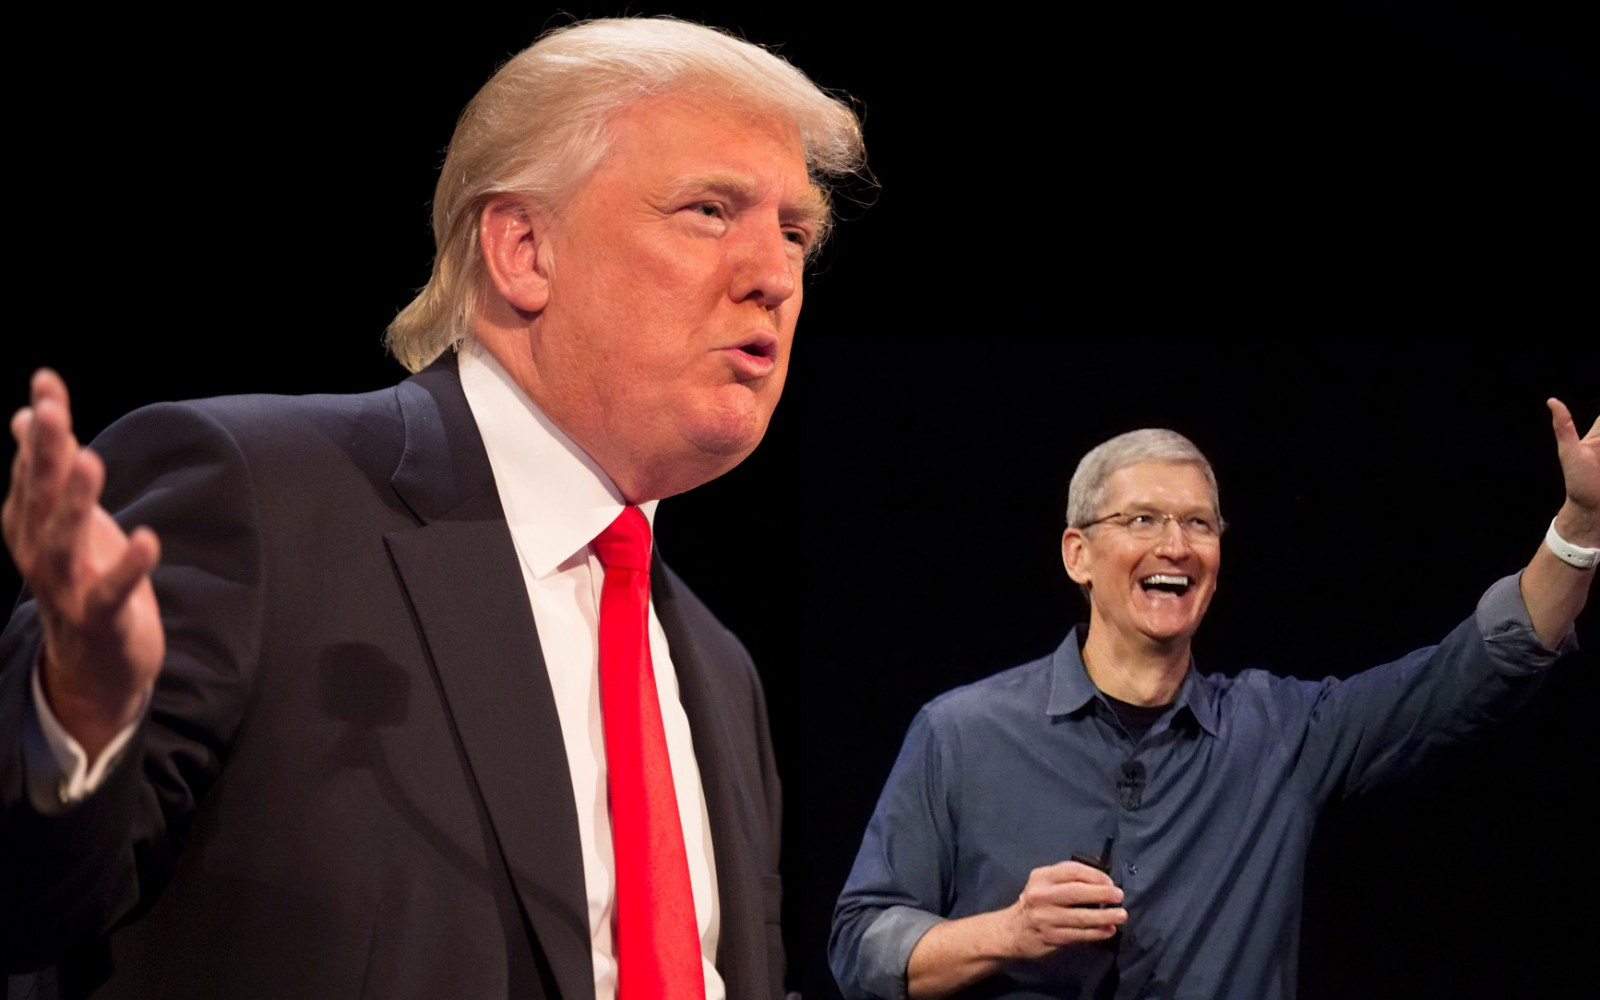 Report: Tim Cook, other tech execs attended secret meeting to discuss how to stop Donald Trump